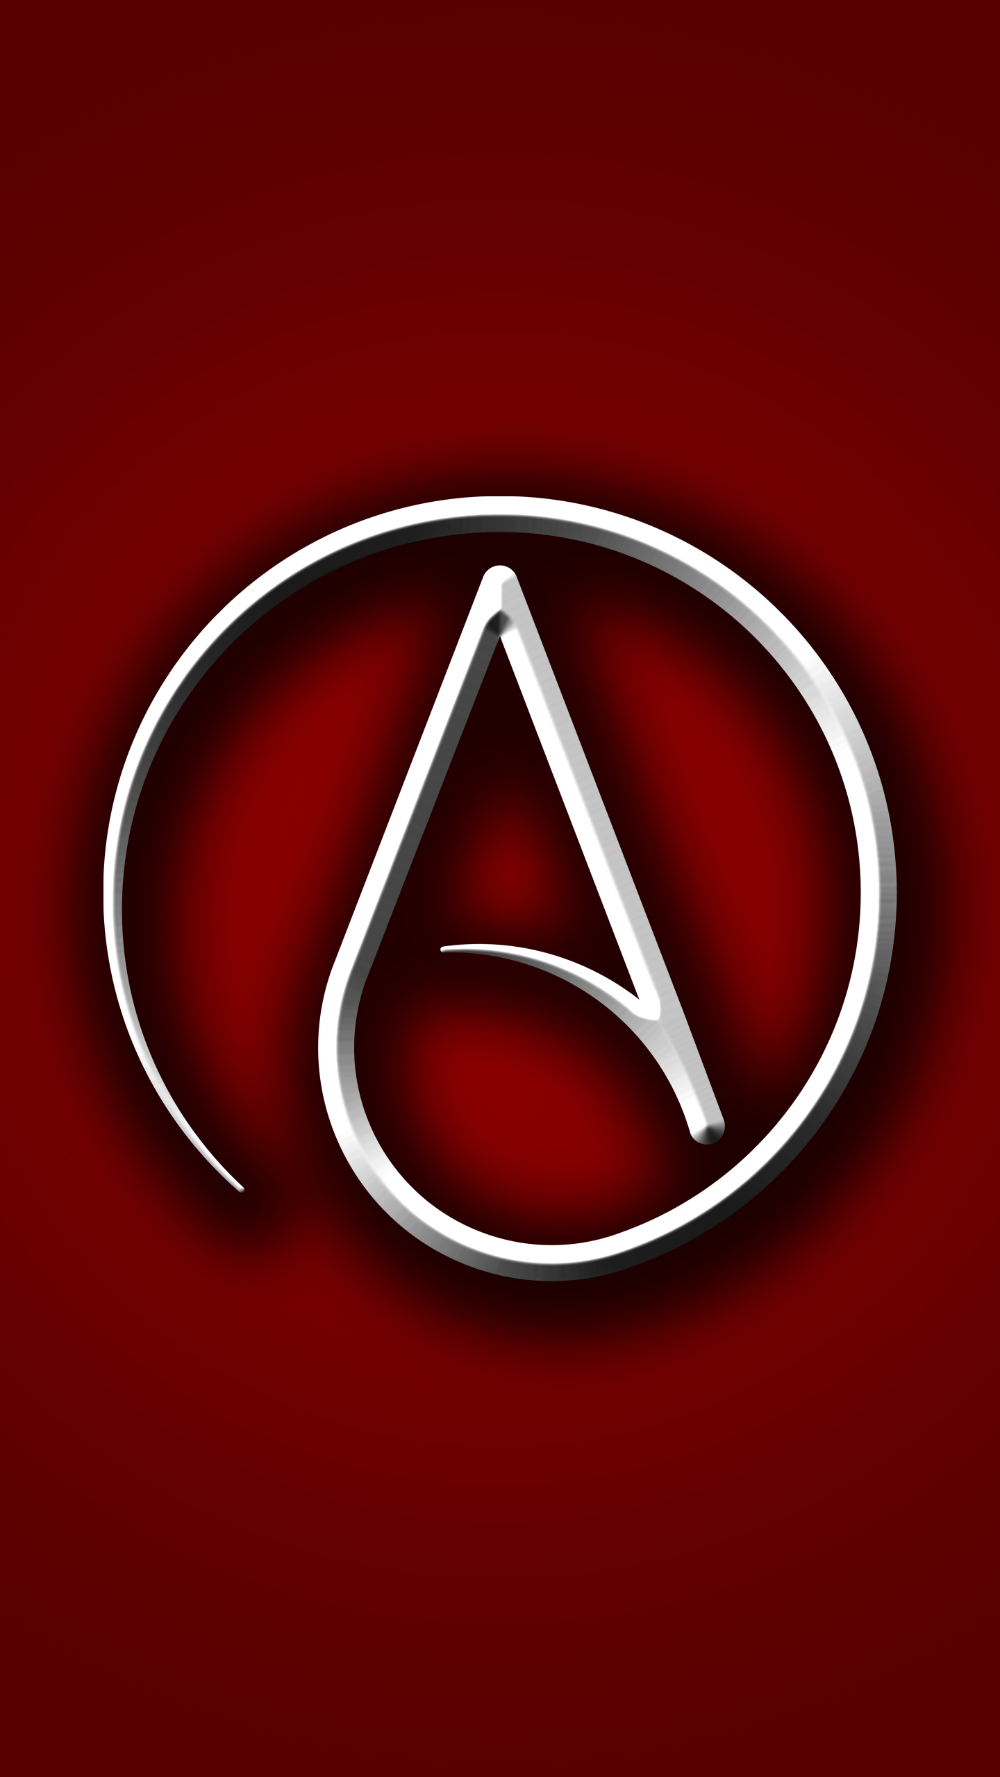 Does anyone know where I can get this atheistic symbol as